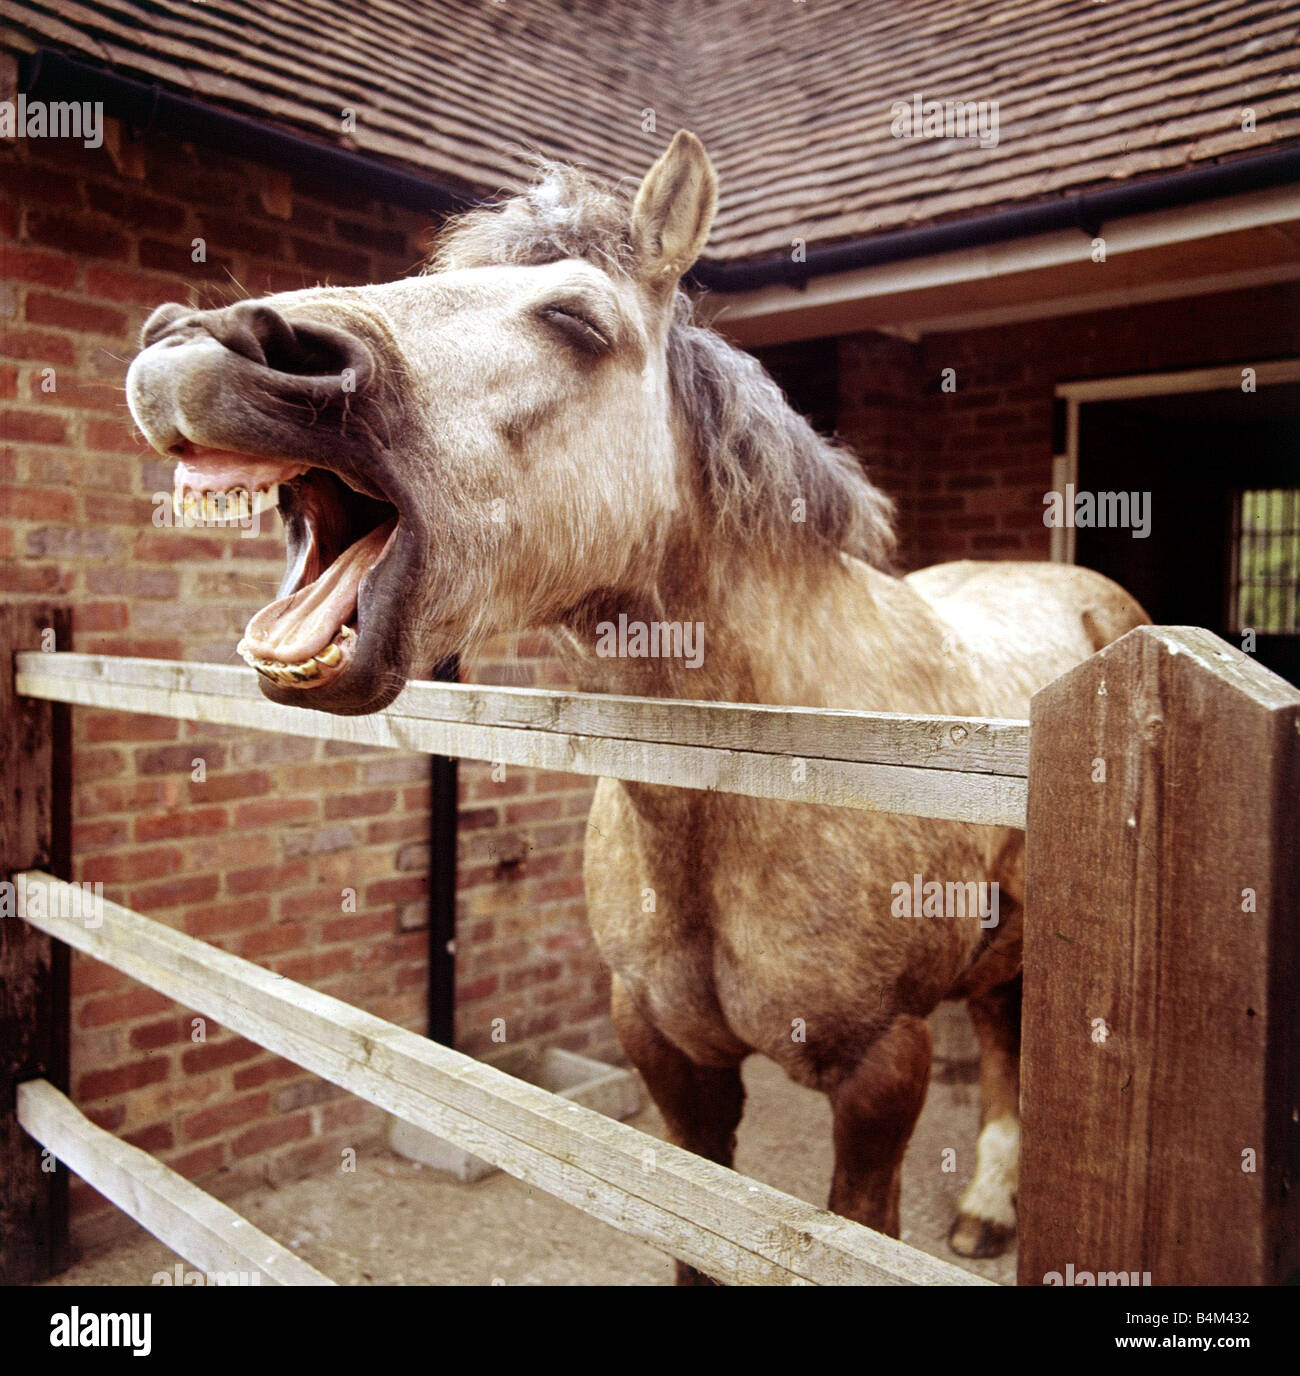 A laughing horse in his stable February 1989 animal ... - photo#17